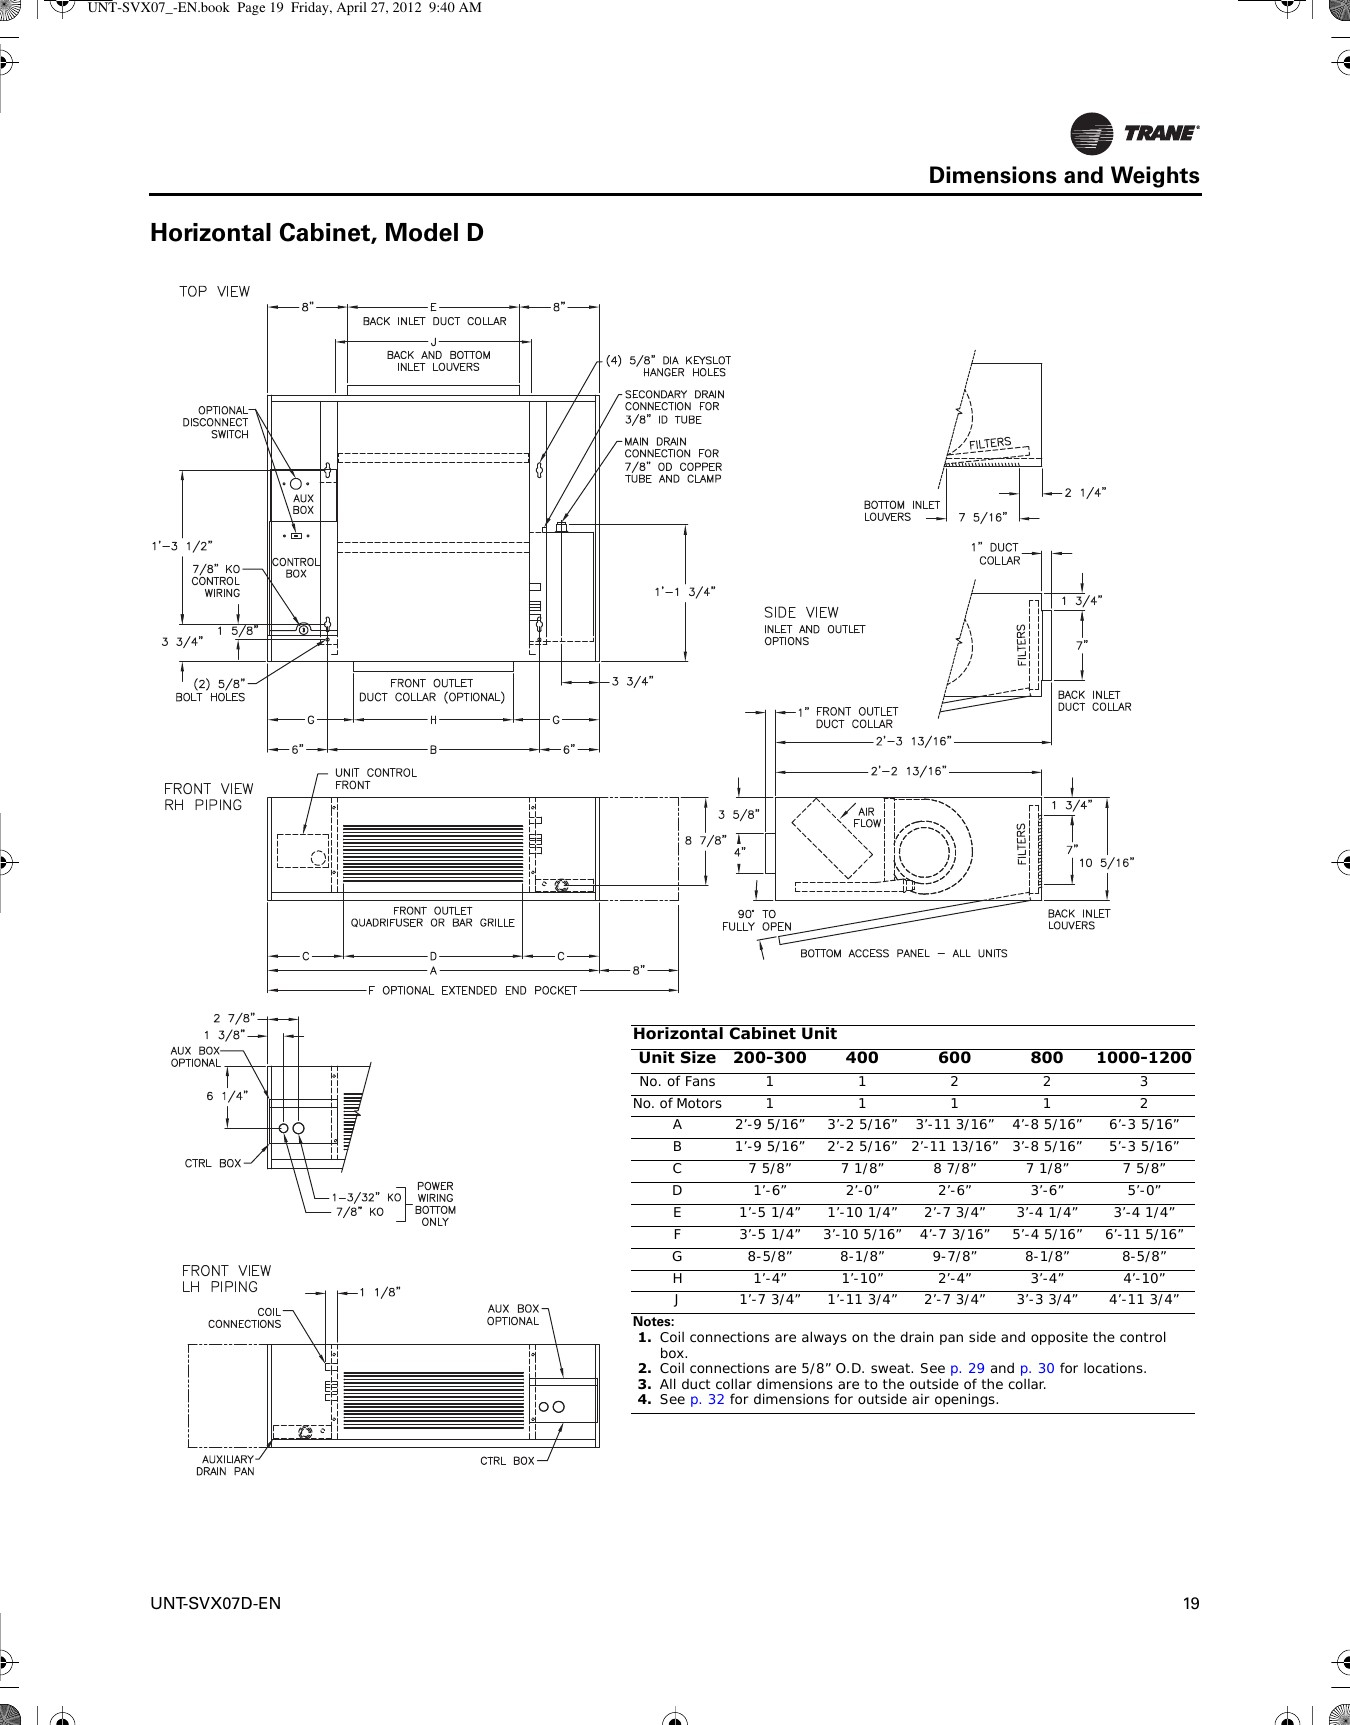 heat surge wiring diagram Collection-trane wsc060 wiring diagram Download Trane Wiring Diagrams Fresh Trane Heat Pump Troubleshooting Choice Image DOWNLOAD Wiring Diagram 8-f